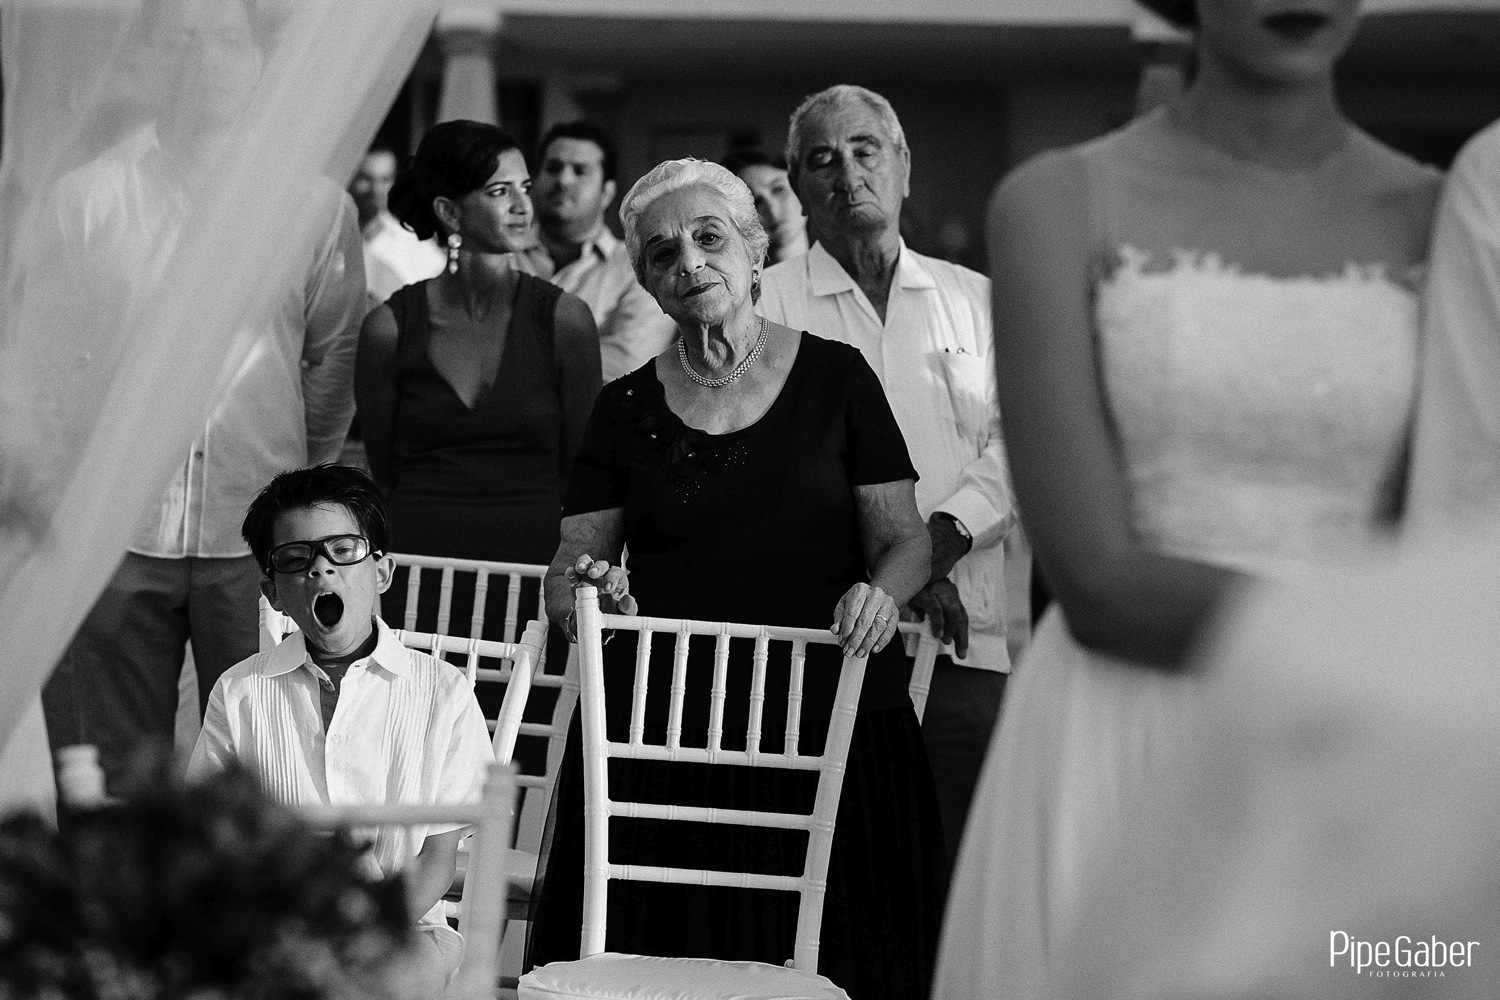 Pipe_Gaber_Riviera_Maya_Cancun_Photographer_Destination_fotografo_Bodas_Mexico_Merida_yucatan_Uaymitun_Weddin_Photography 06.JPG